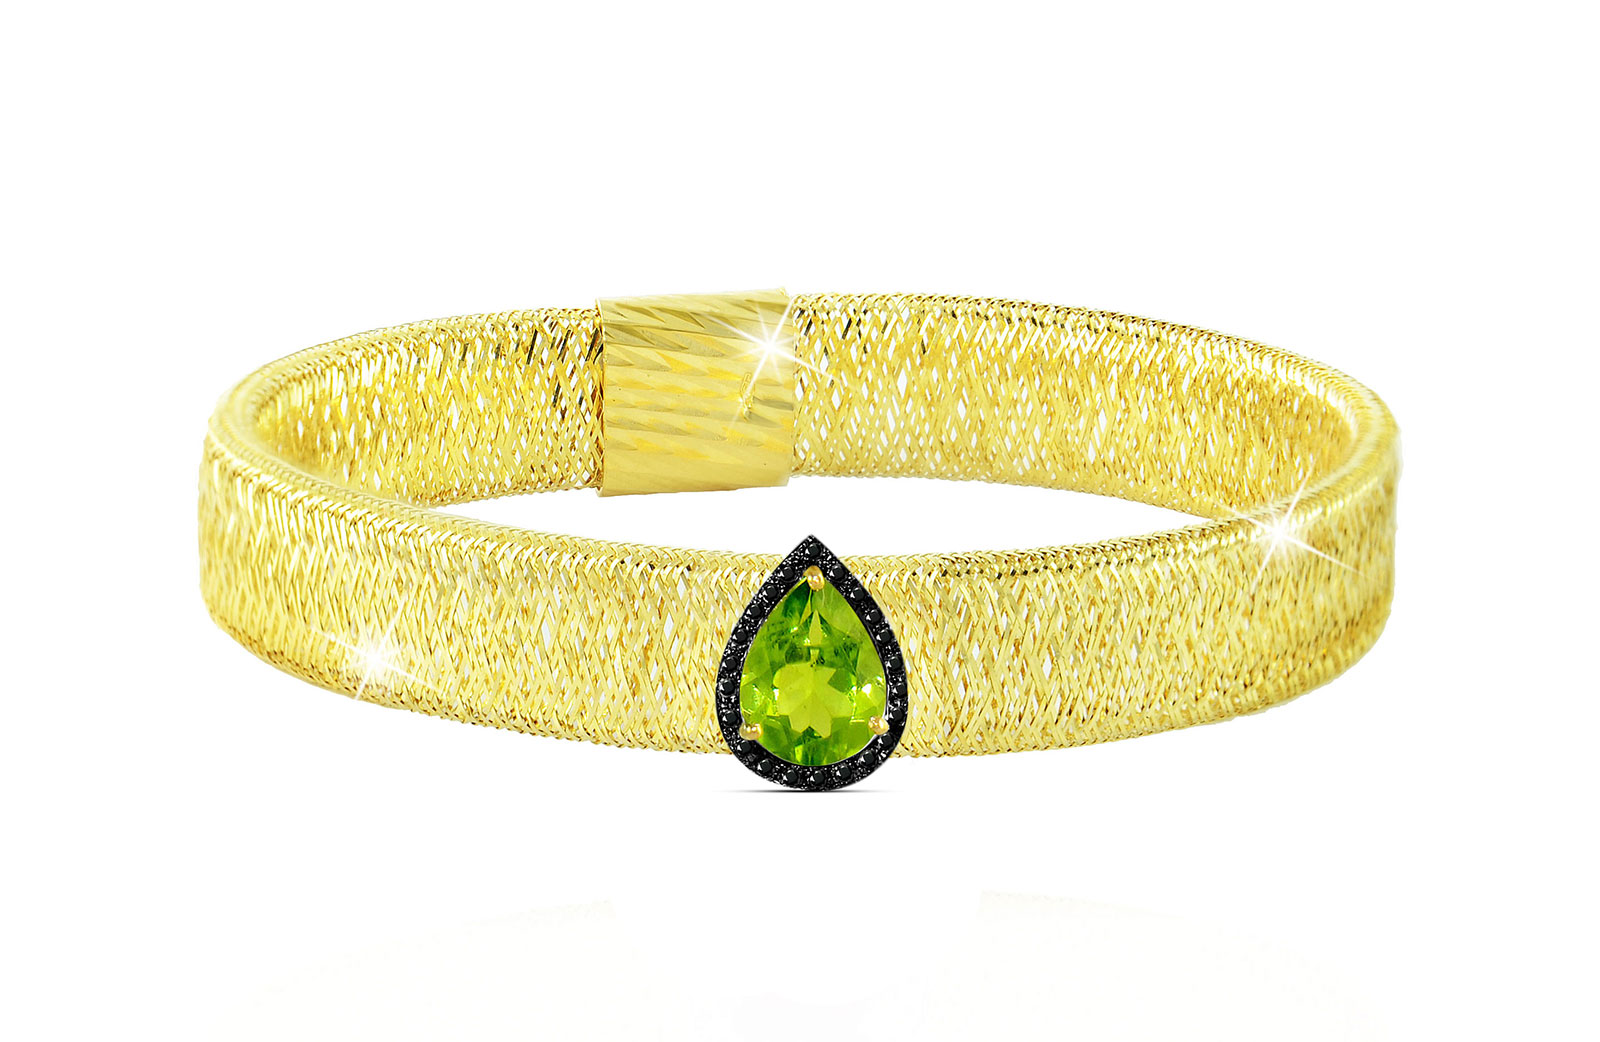 Vera Perla 18K Gold 0.12ct Black Diamonds, Peridot Mesh Bracelet